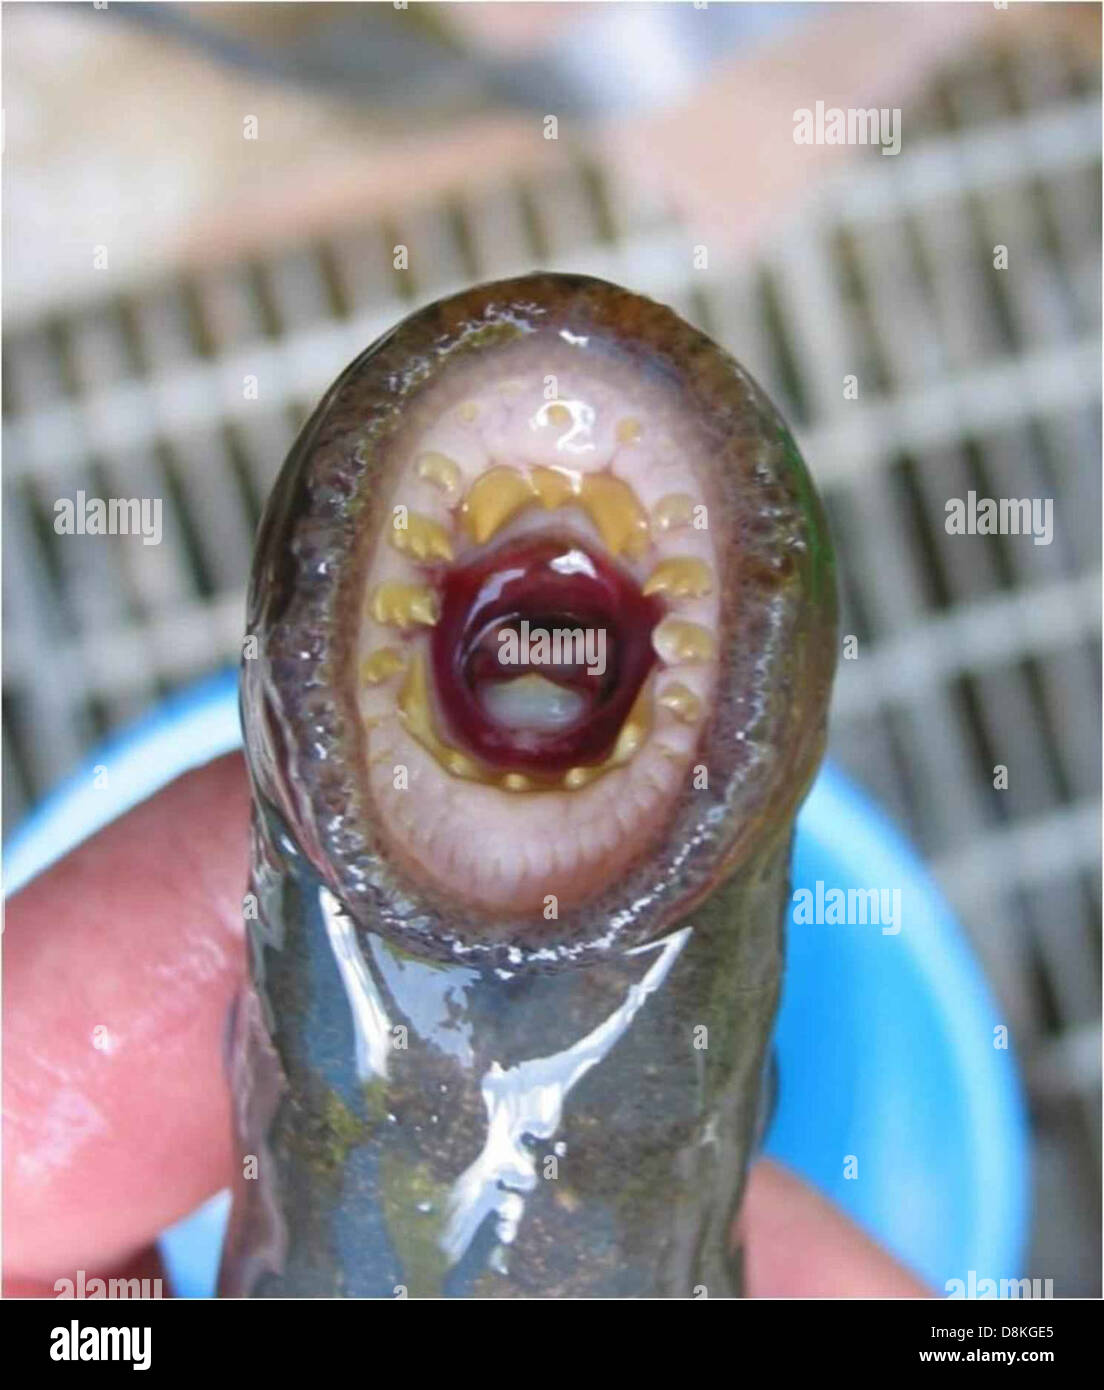 Lamprey Mouth Stock Photos & Lamprey Mouth Stock Images - Alamy